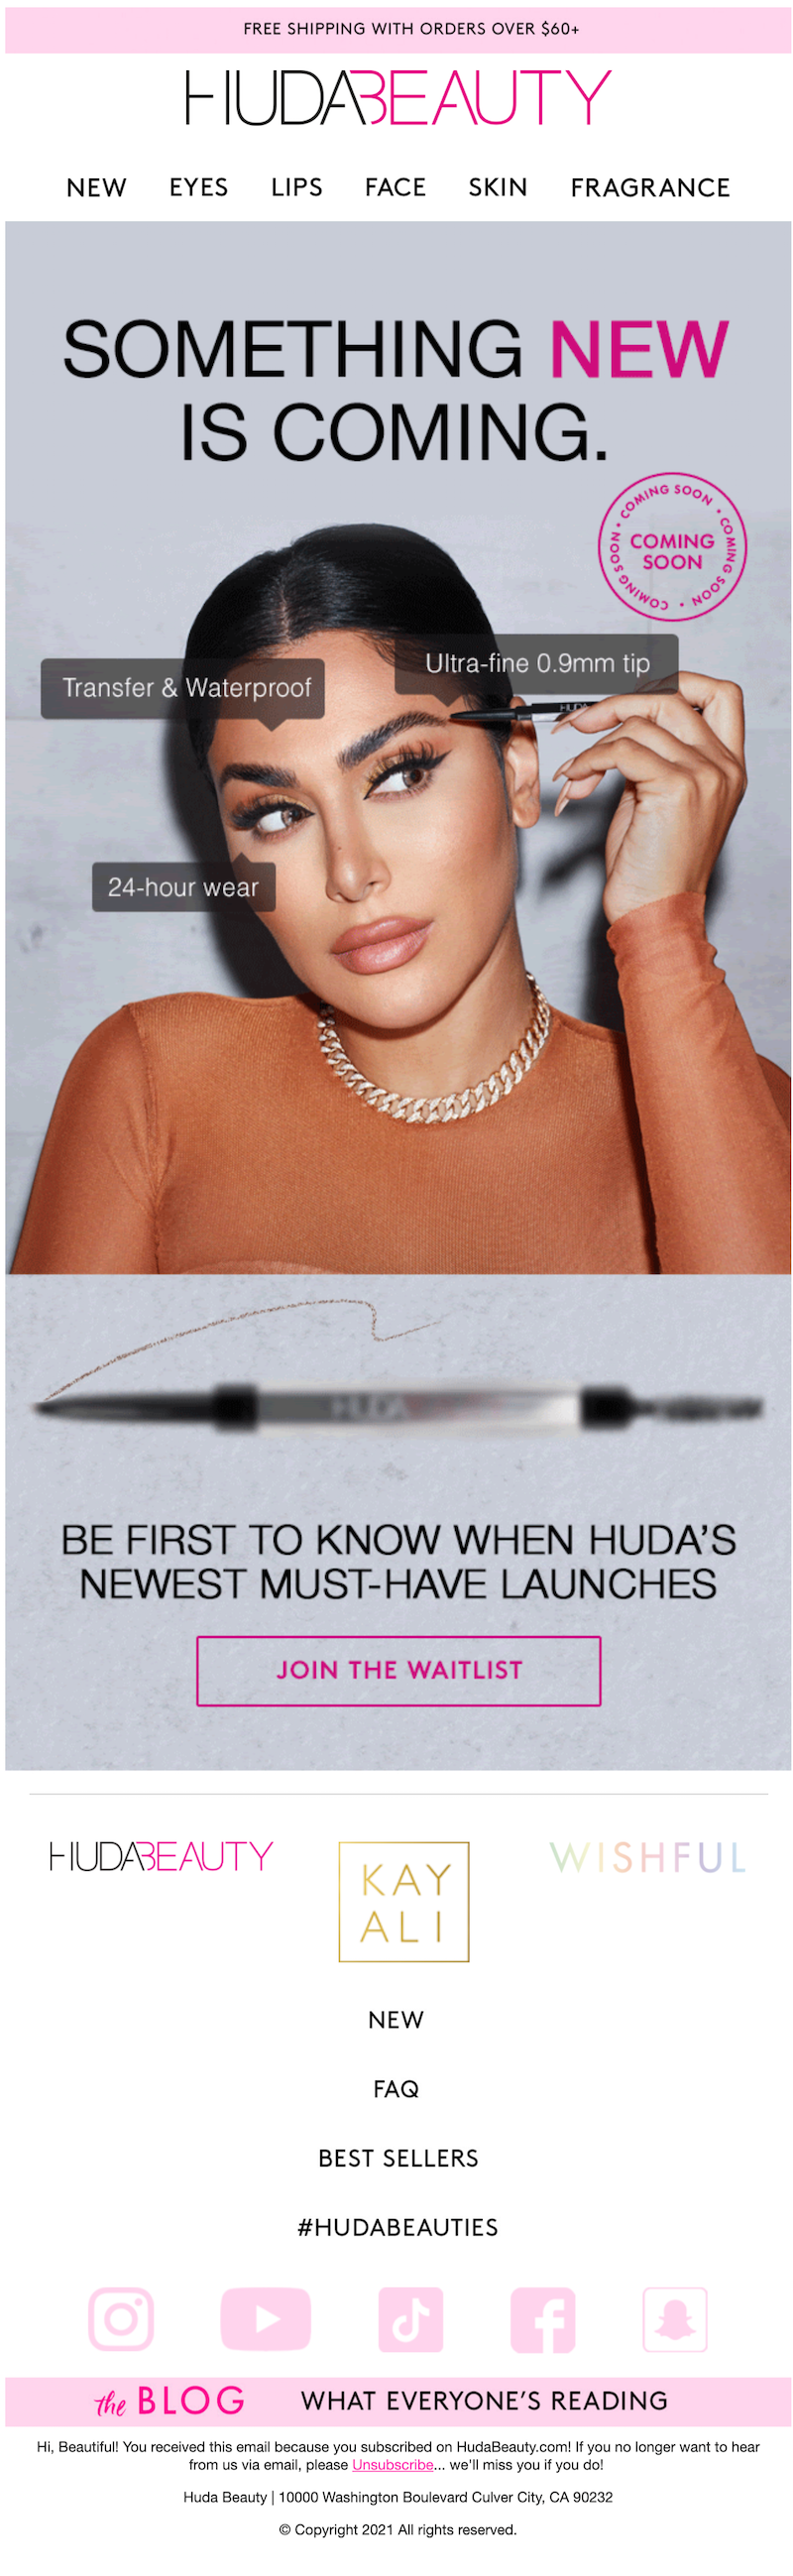 mysterious product launch email